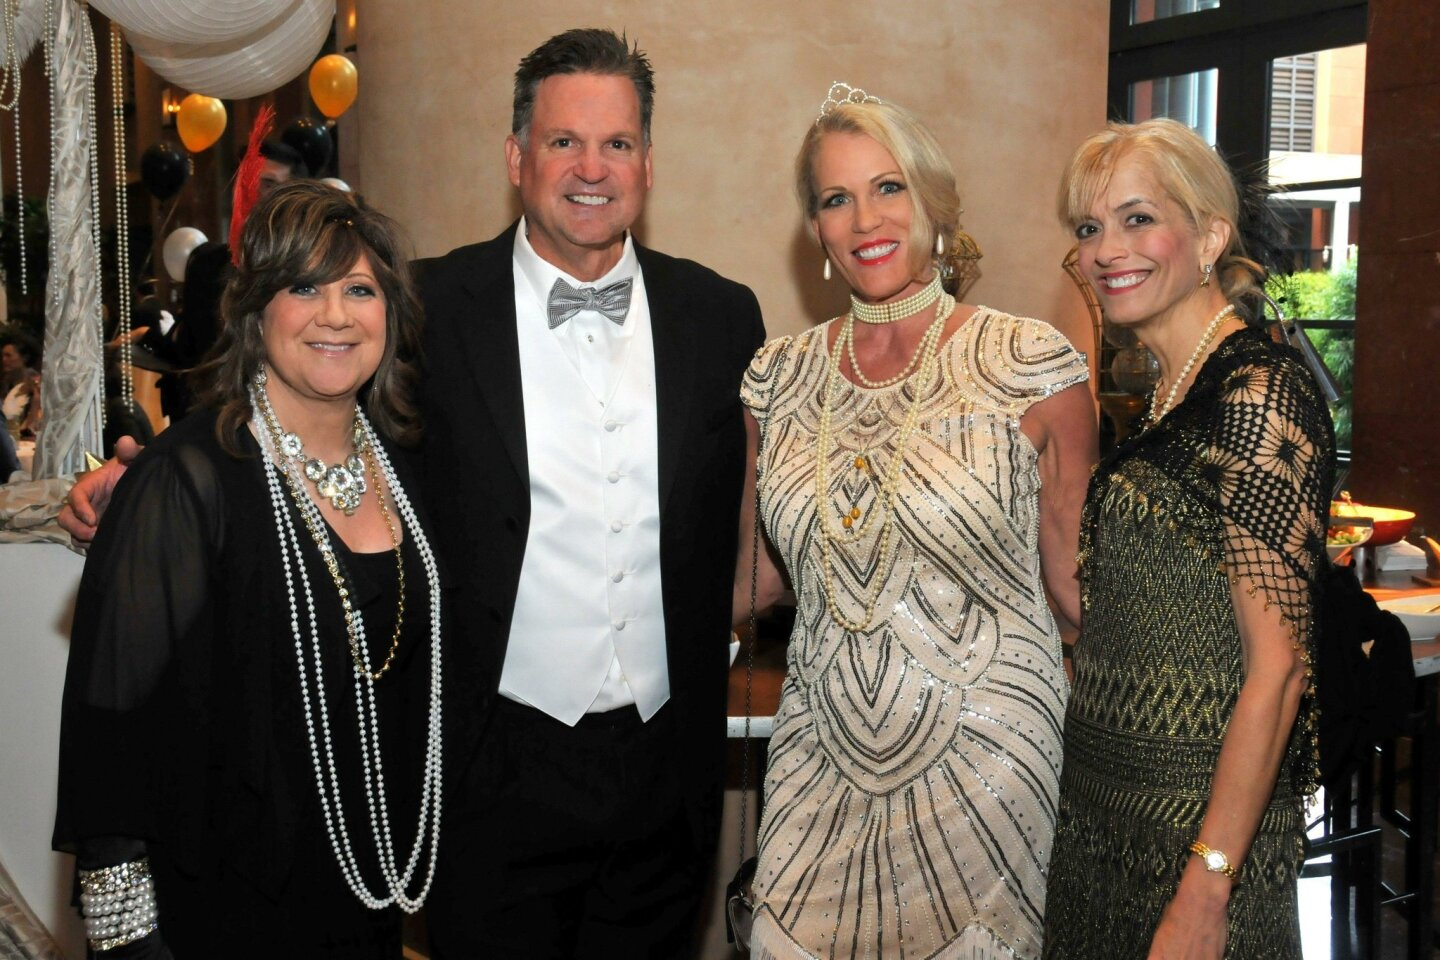 Spinoff gala chair Robin Rady, Randy and Teresa Cundiff, Vickie Curd Ladt